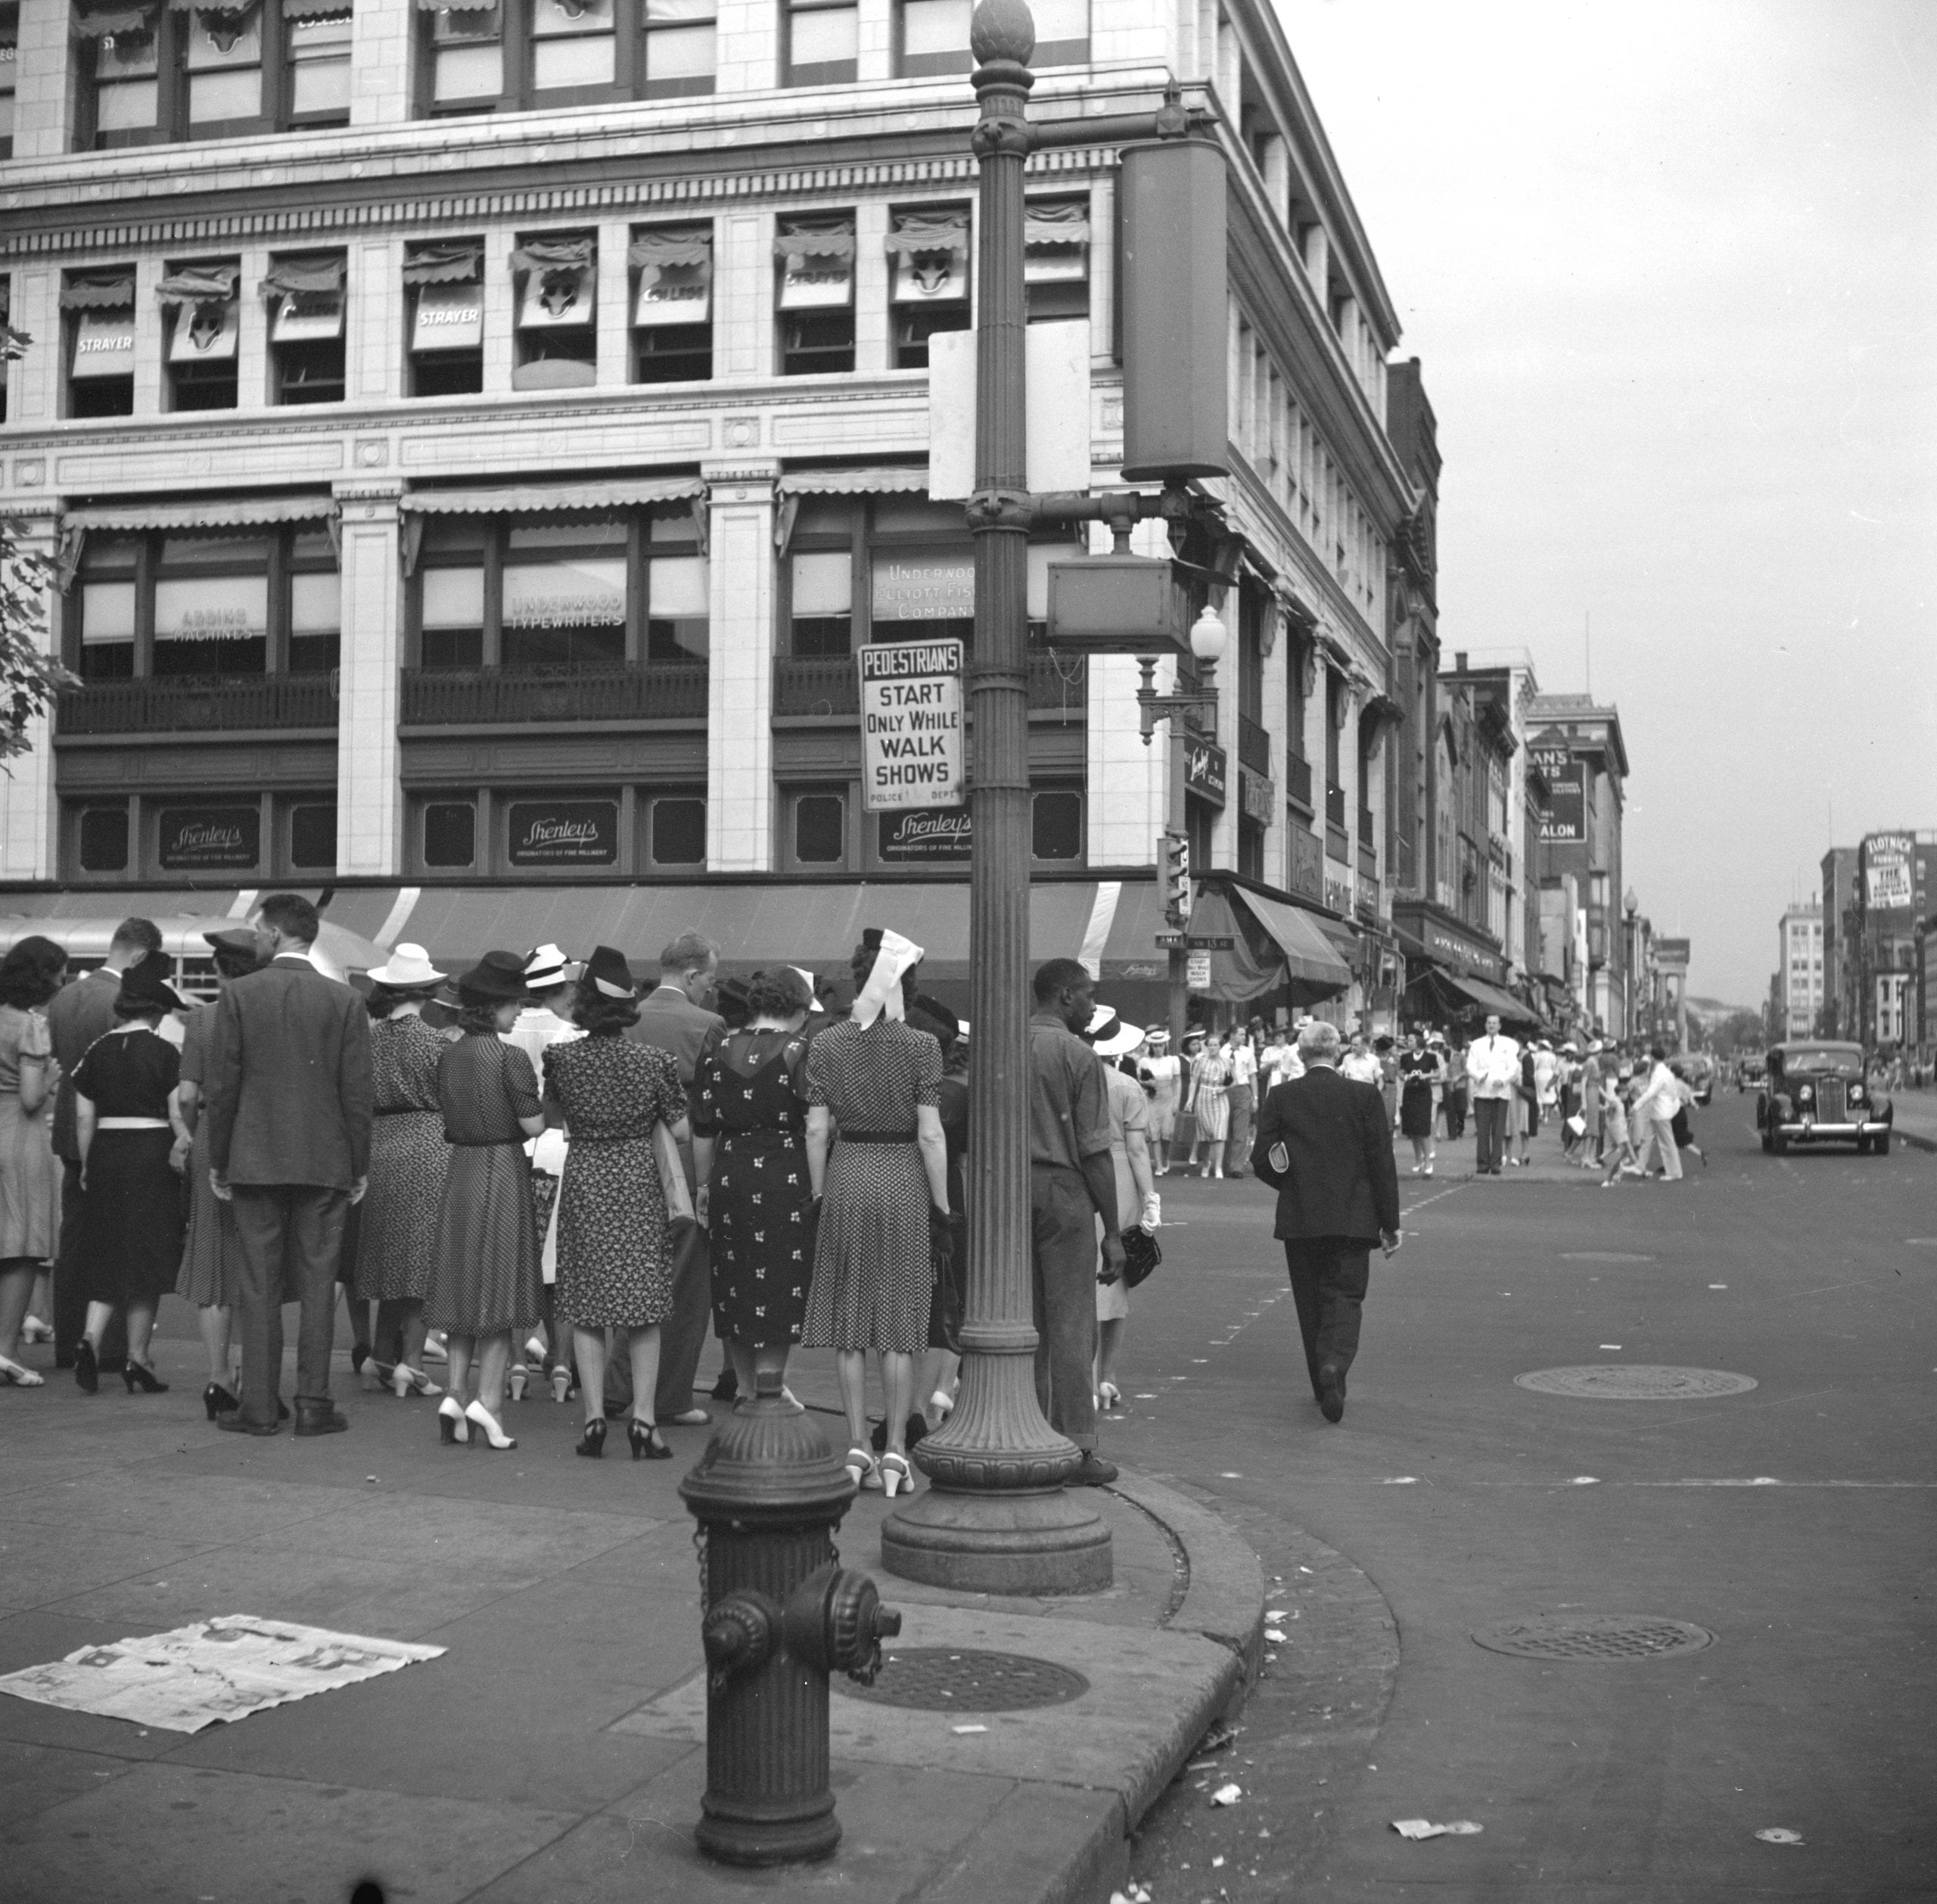 View of 13th Street in 1940s